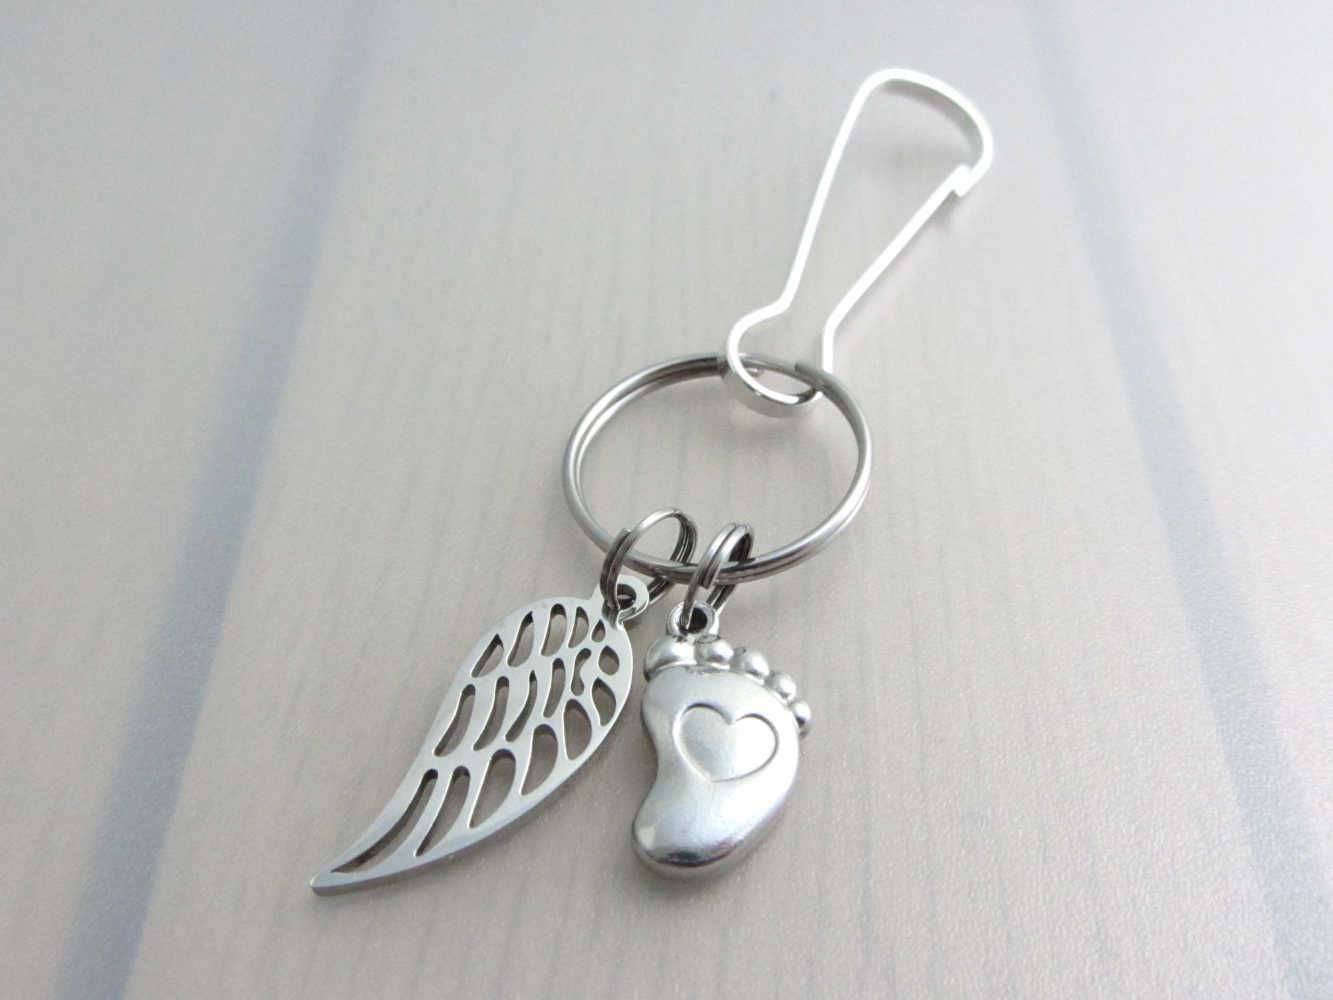 stainless steel single angel wing charm and a single foot charm with indented heart on a bag charm with snap clip hook